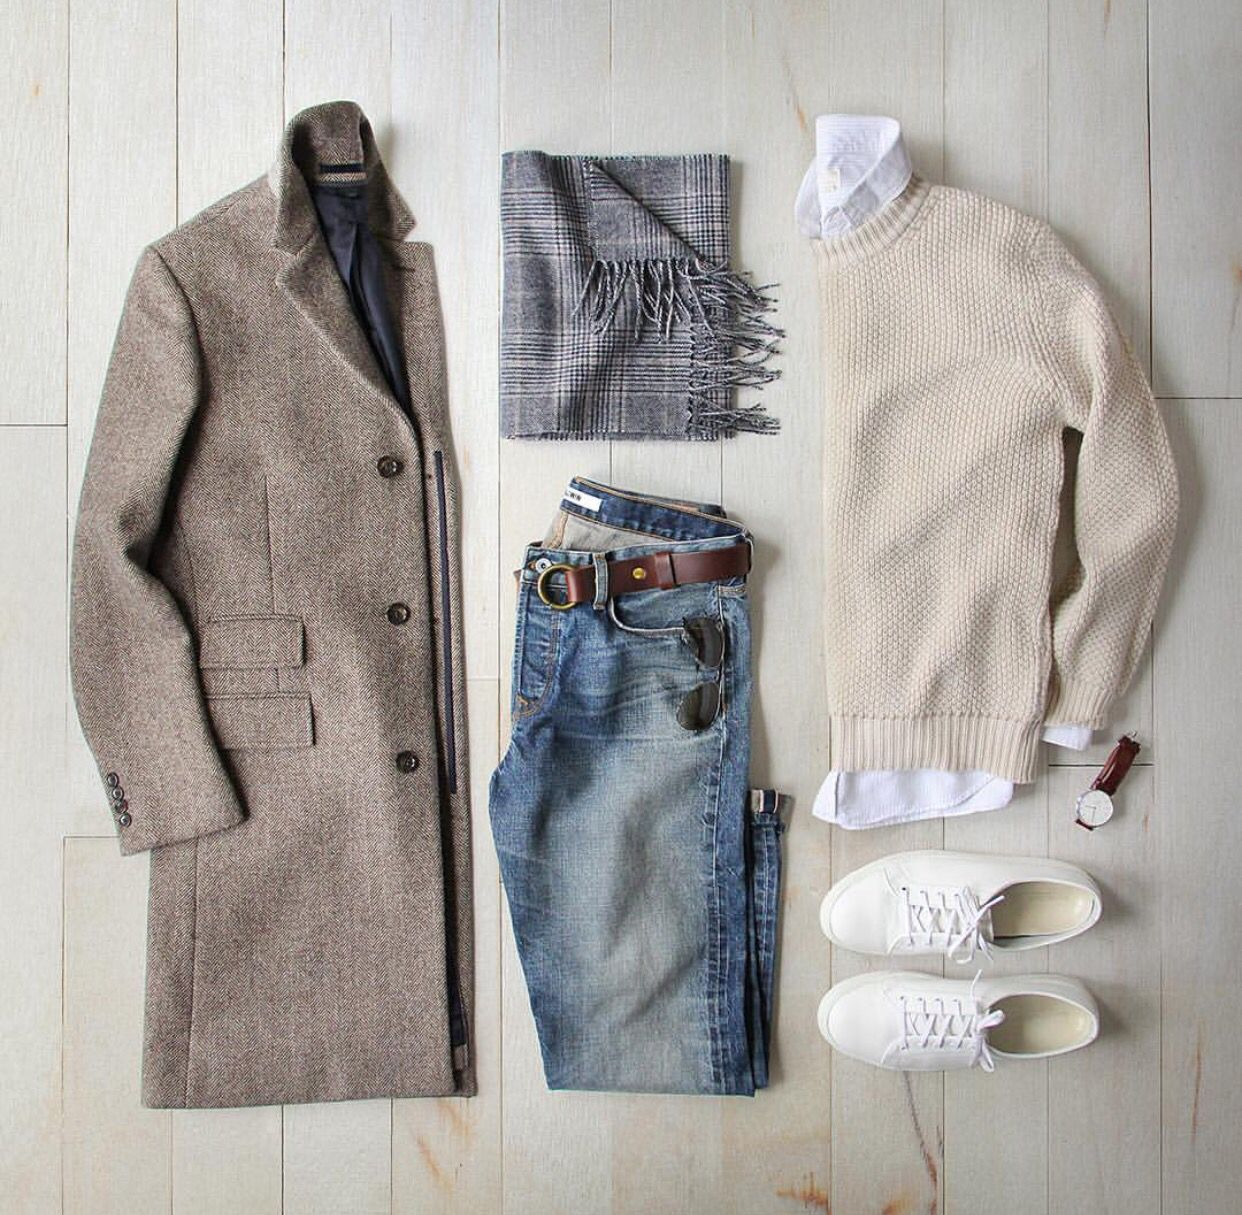 Love this for a November outfit.